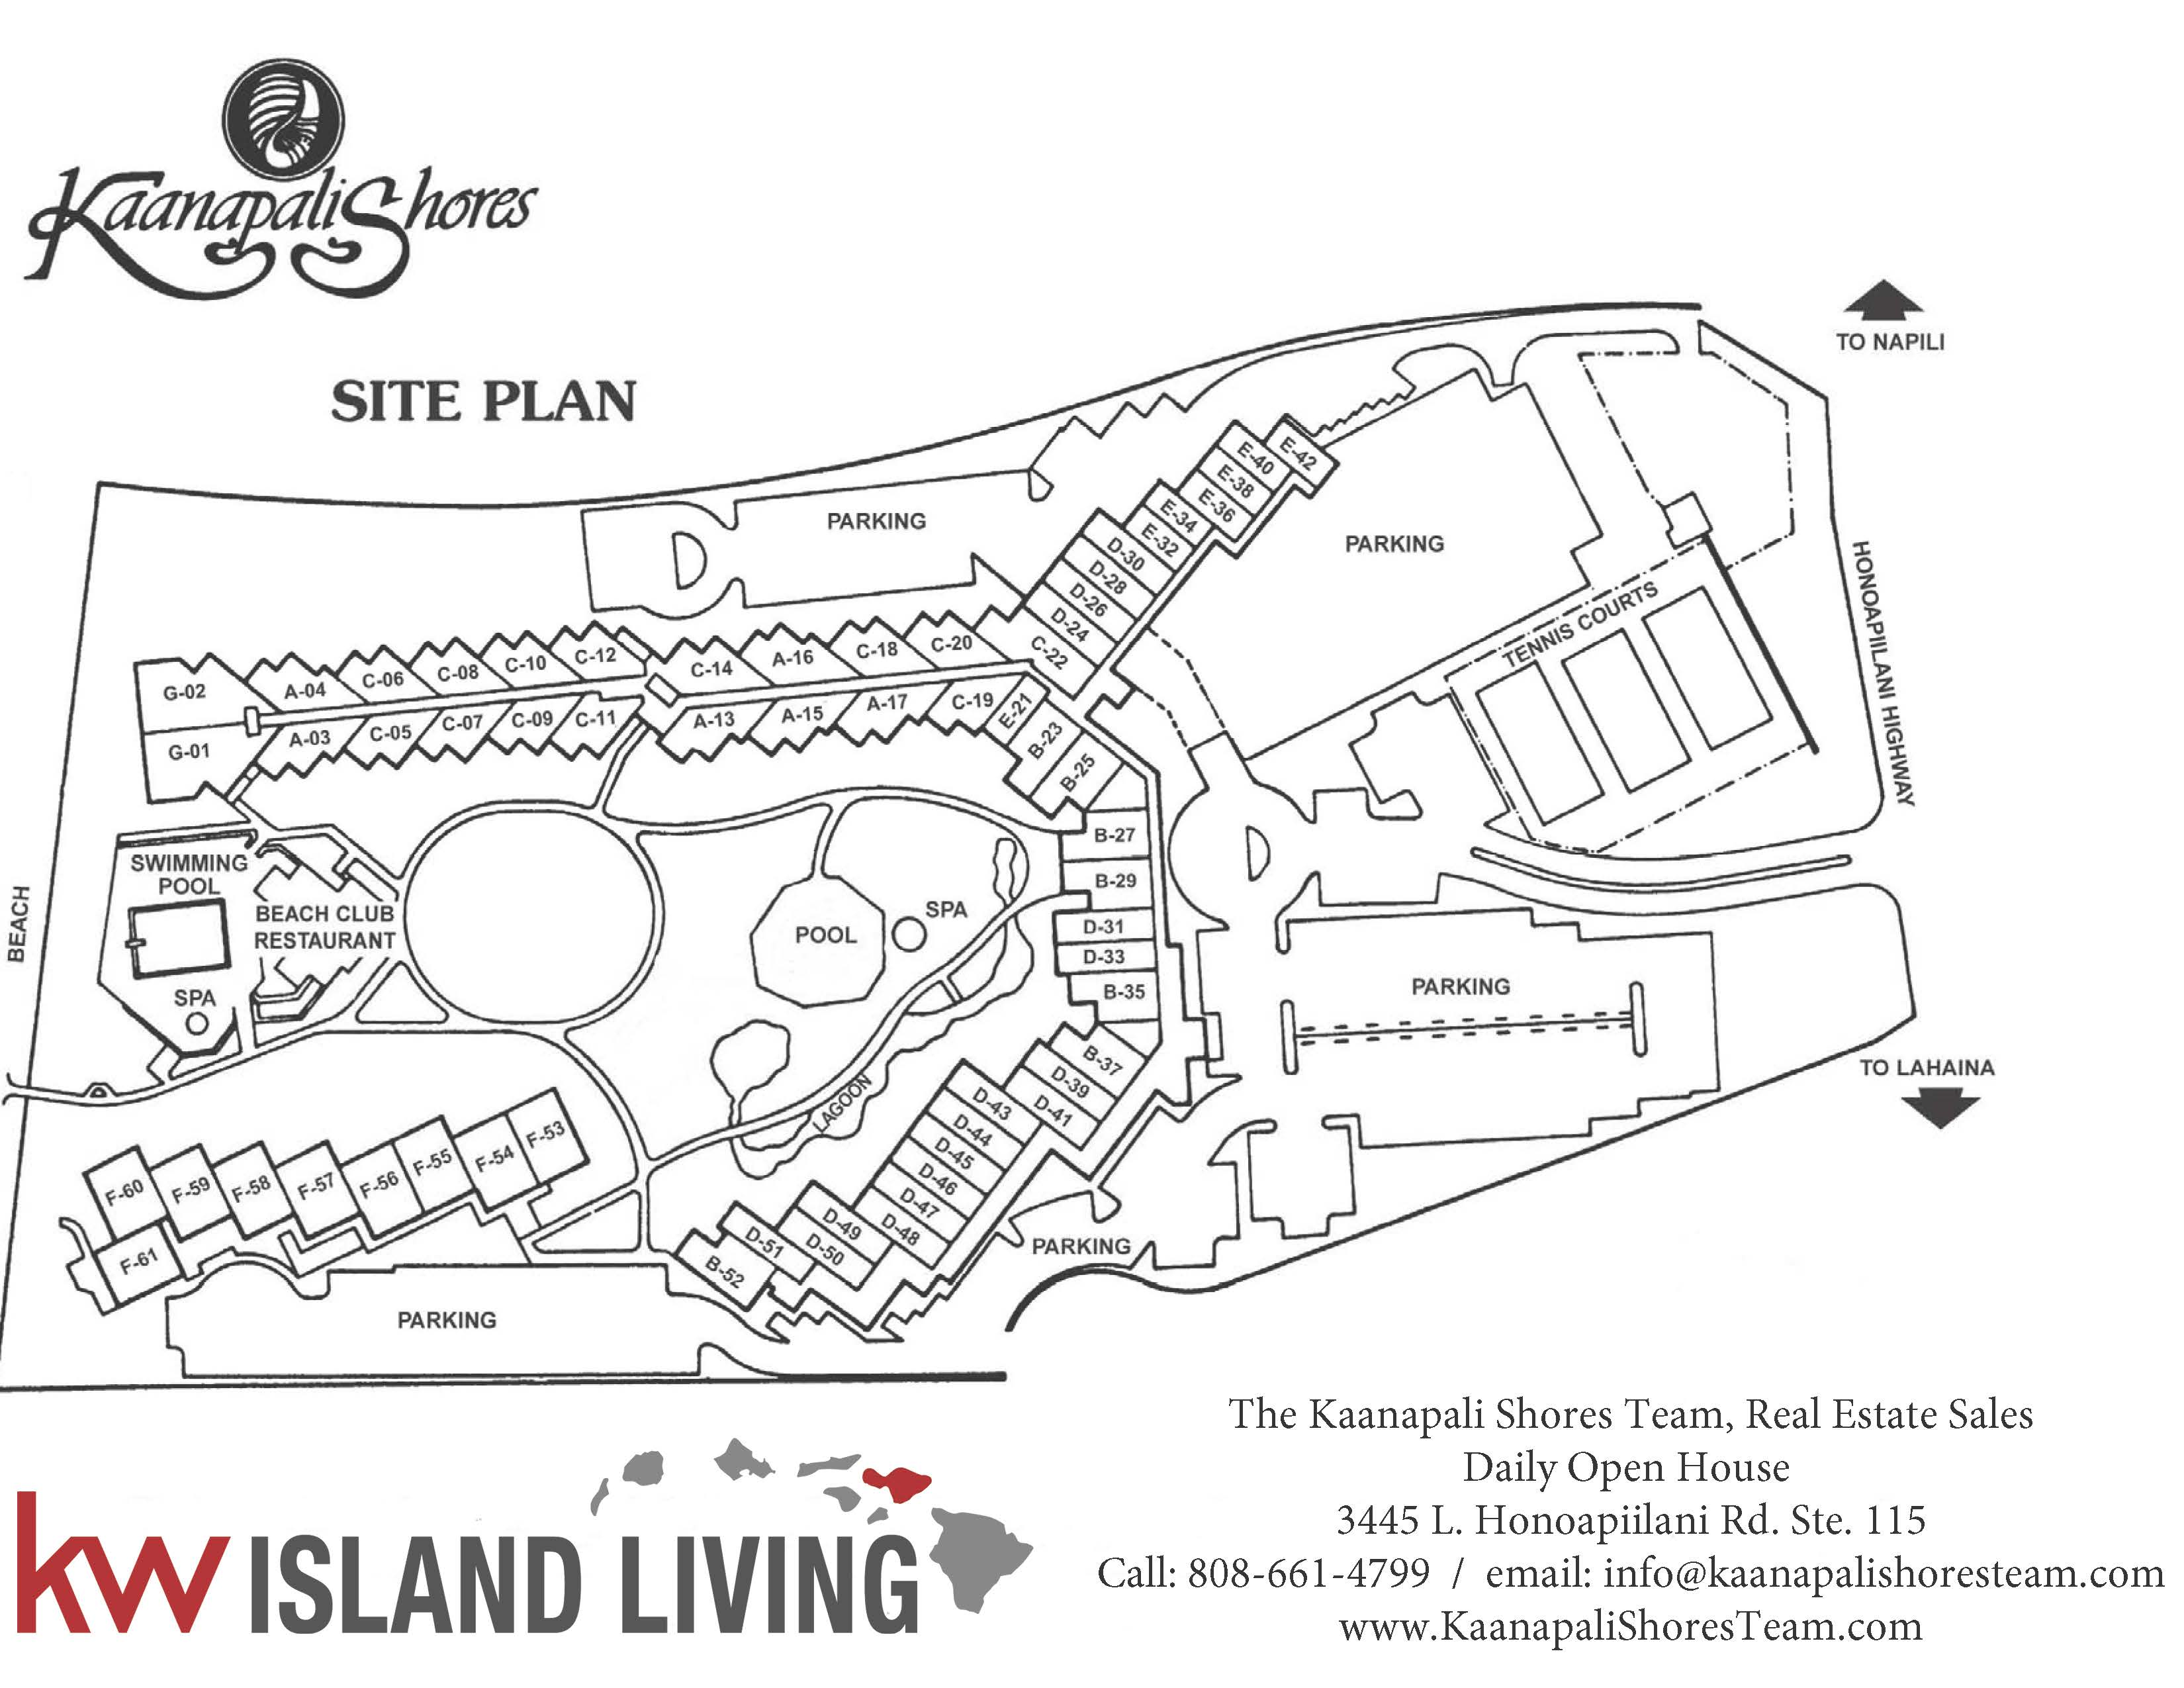 Kaanapali Shores Site Plan